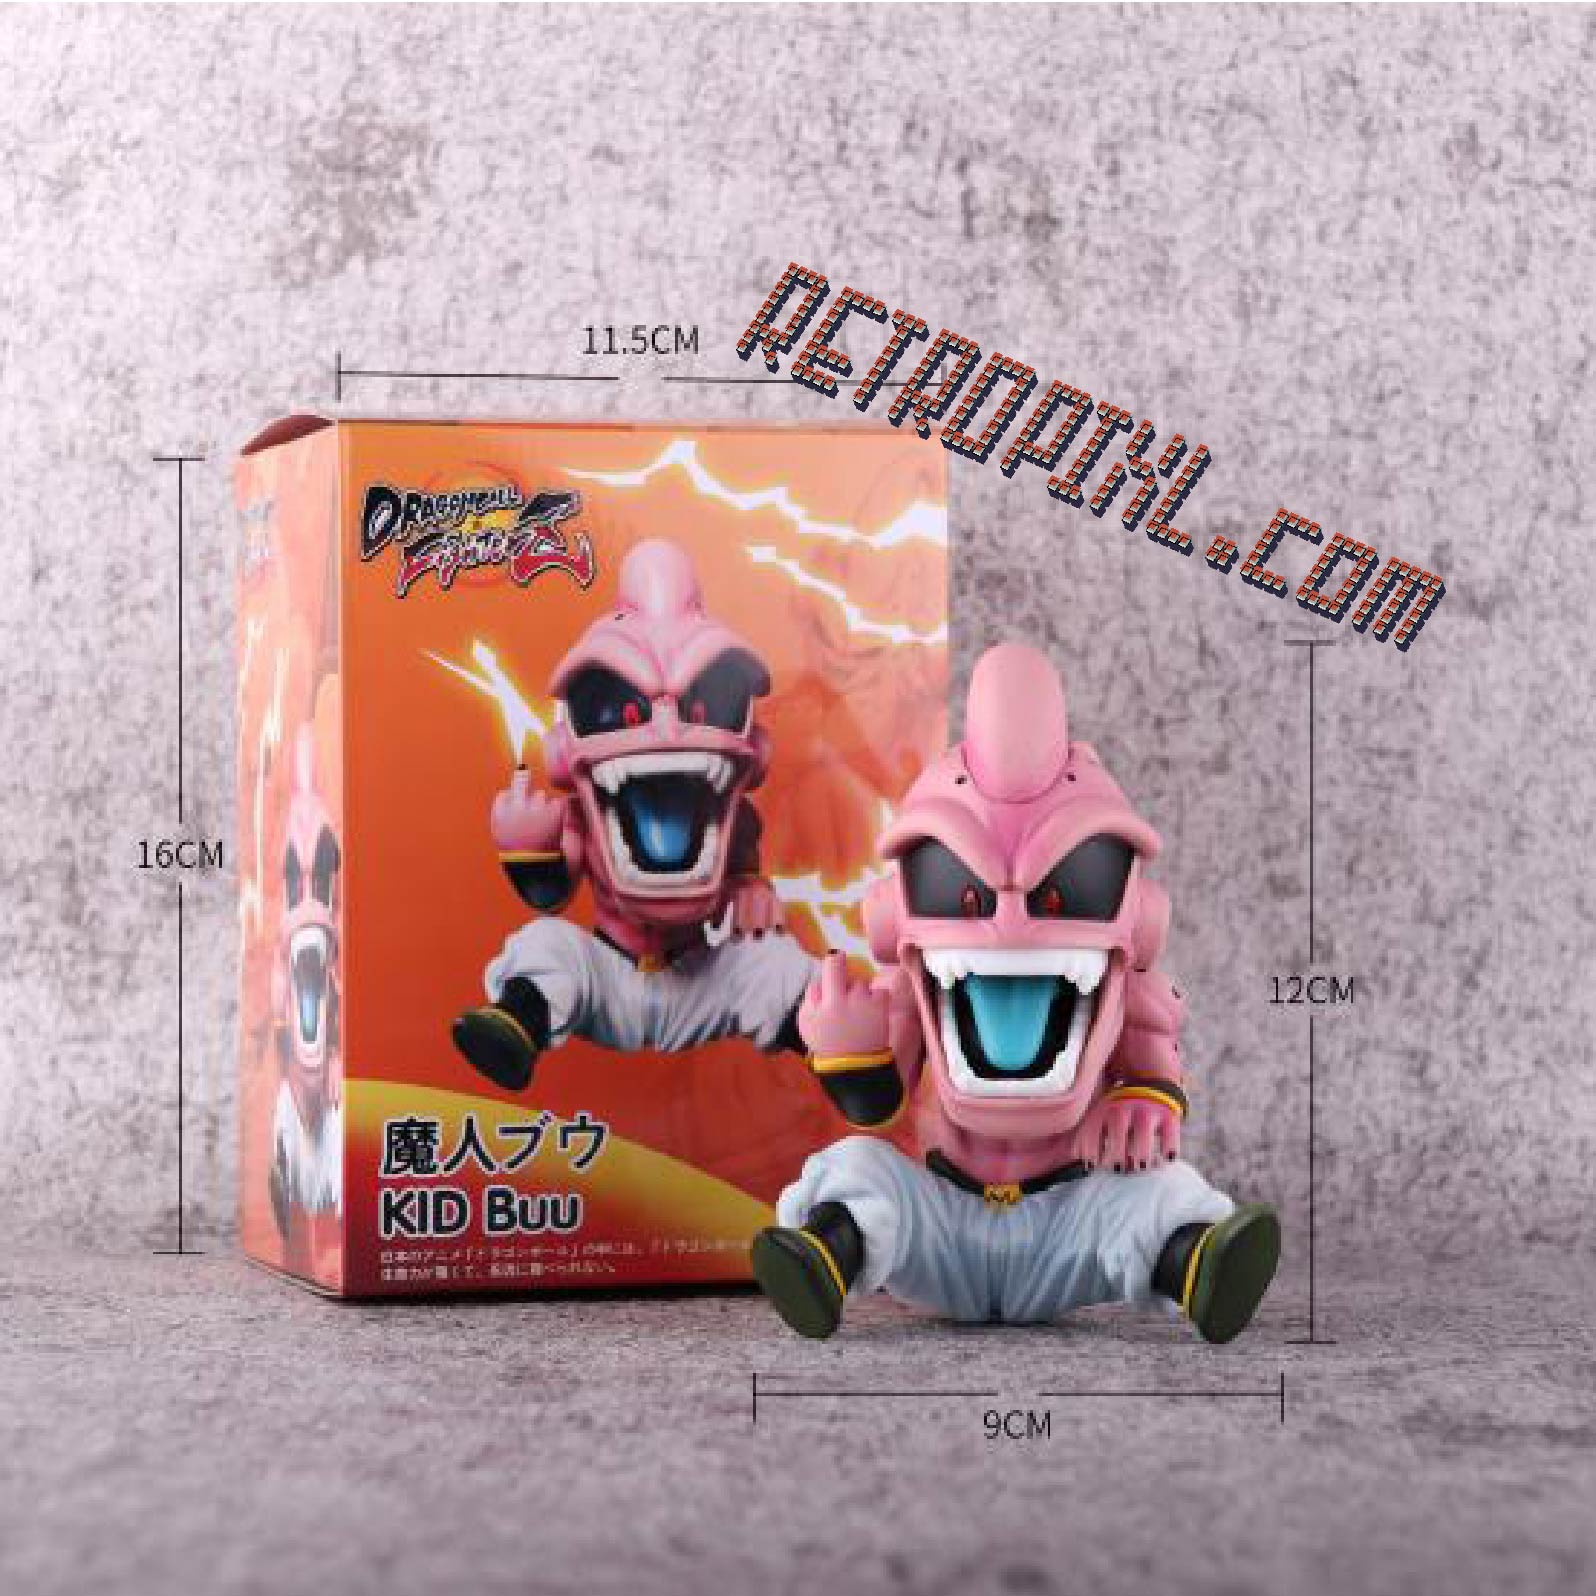 RetroPixl Retrogaming Toys Collectibles  Dragon Ball Fighter Z kid Buu